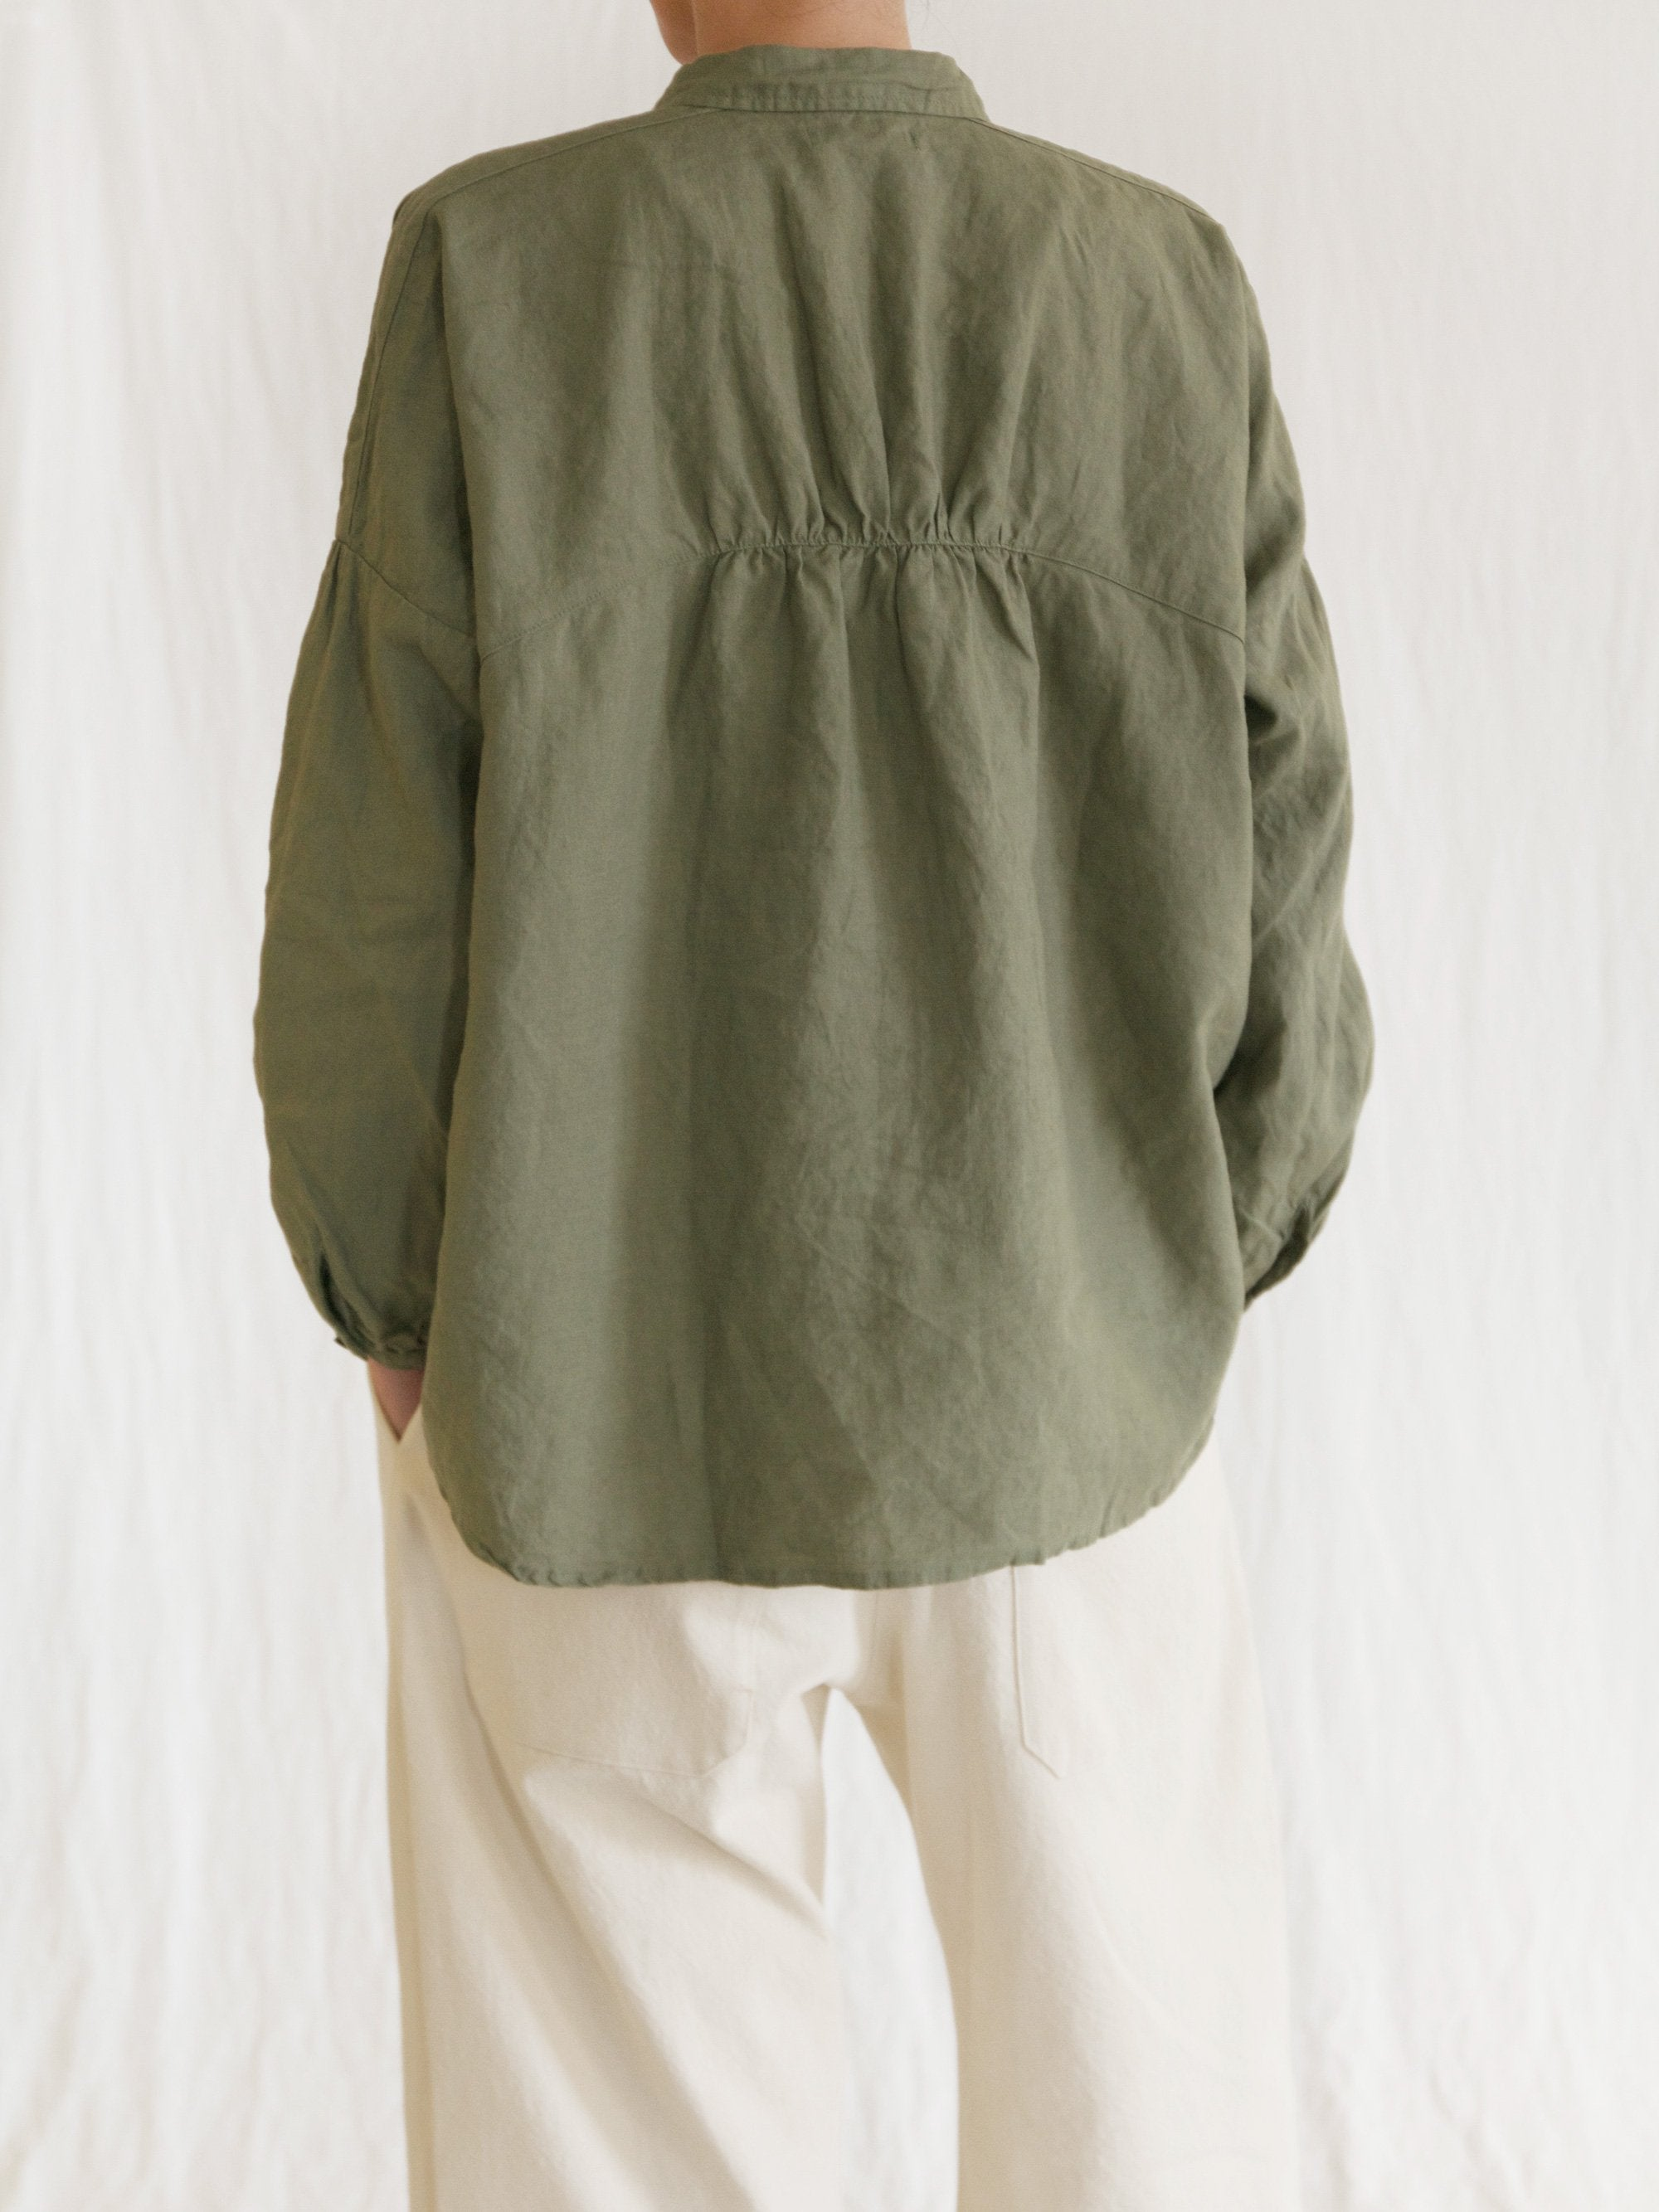 Namu Shop - Ichi Antiquites Linen Gather Circle Shirt - Olive